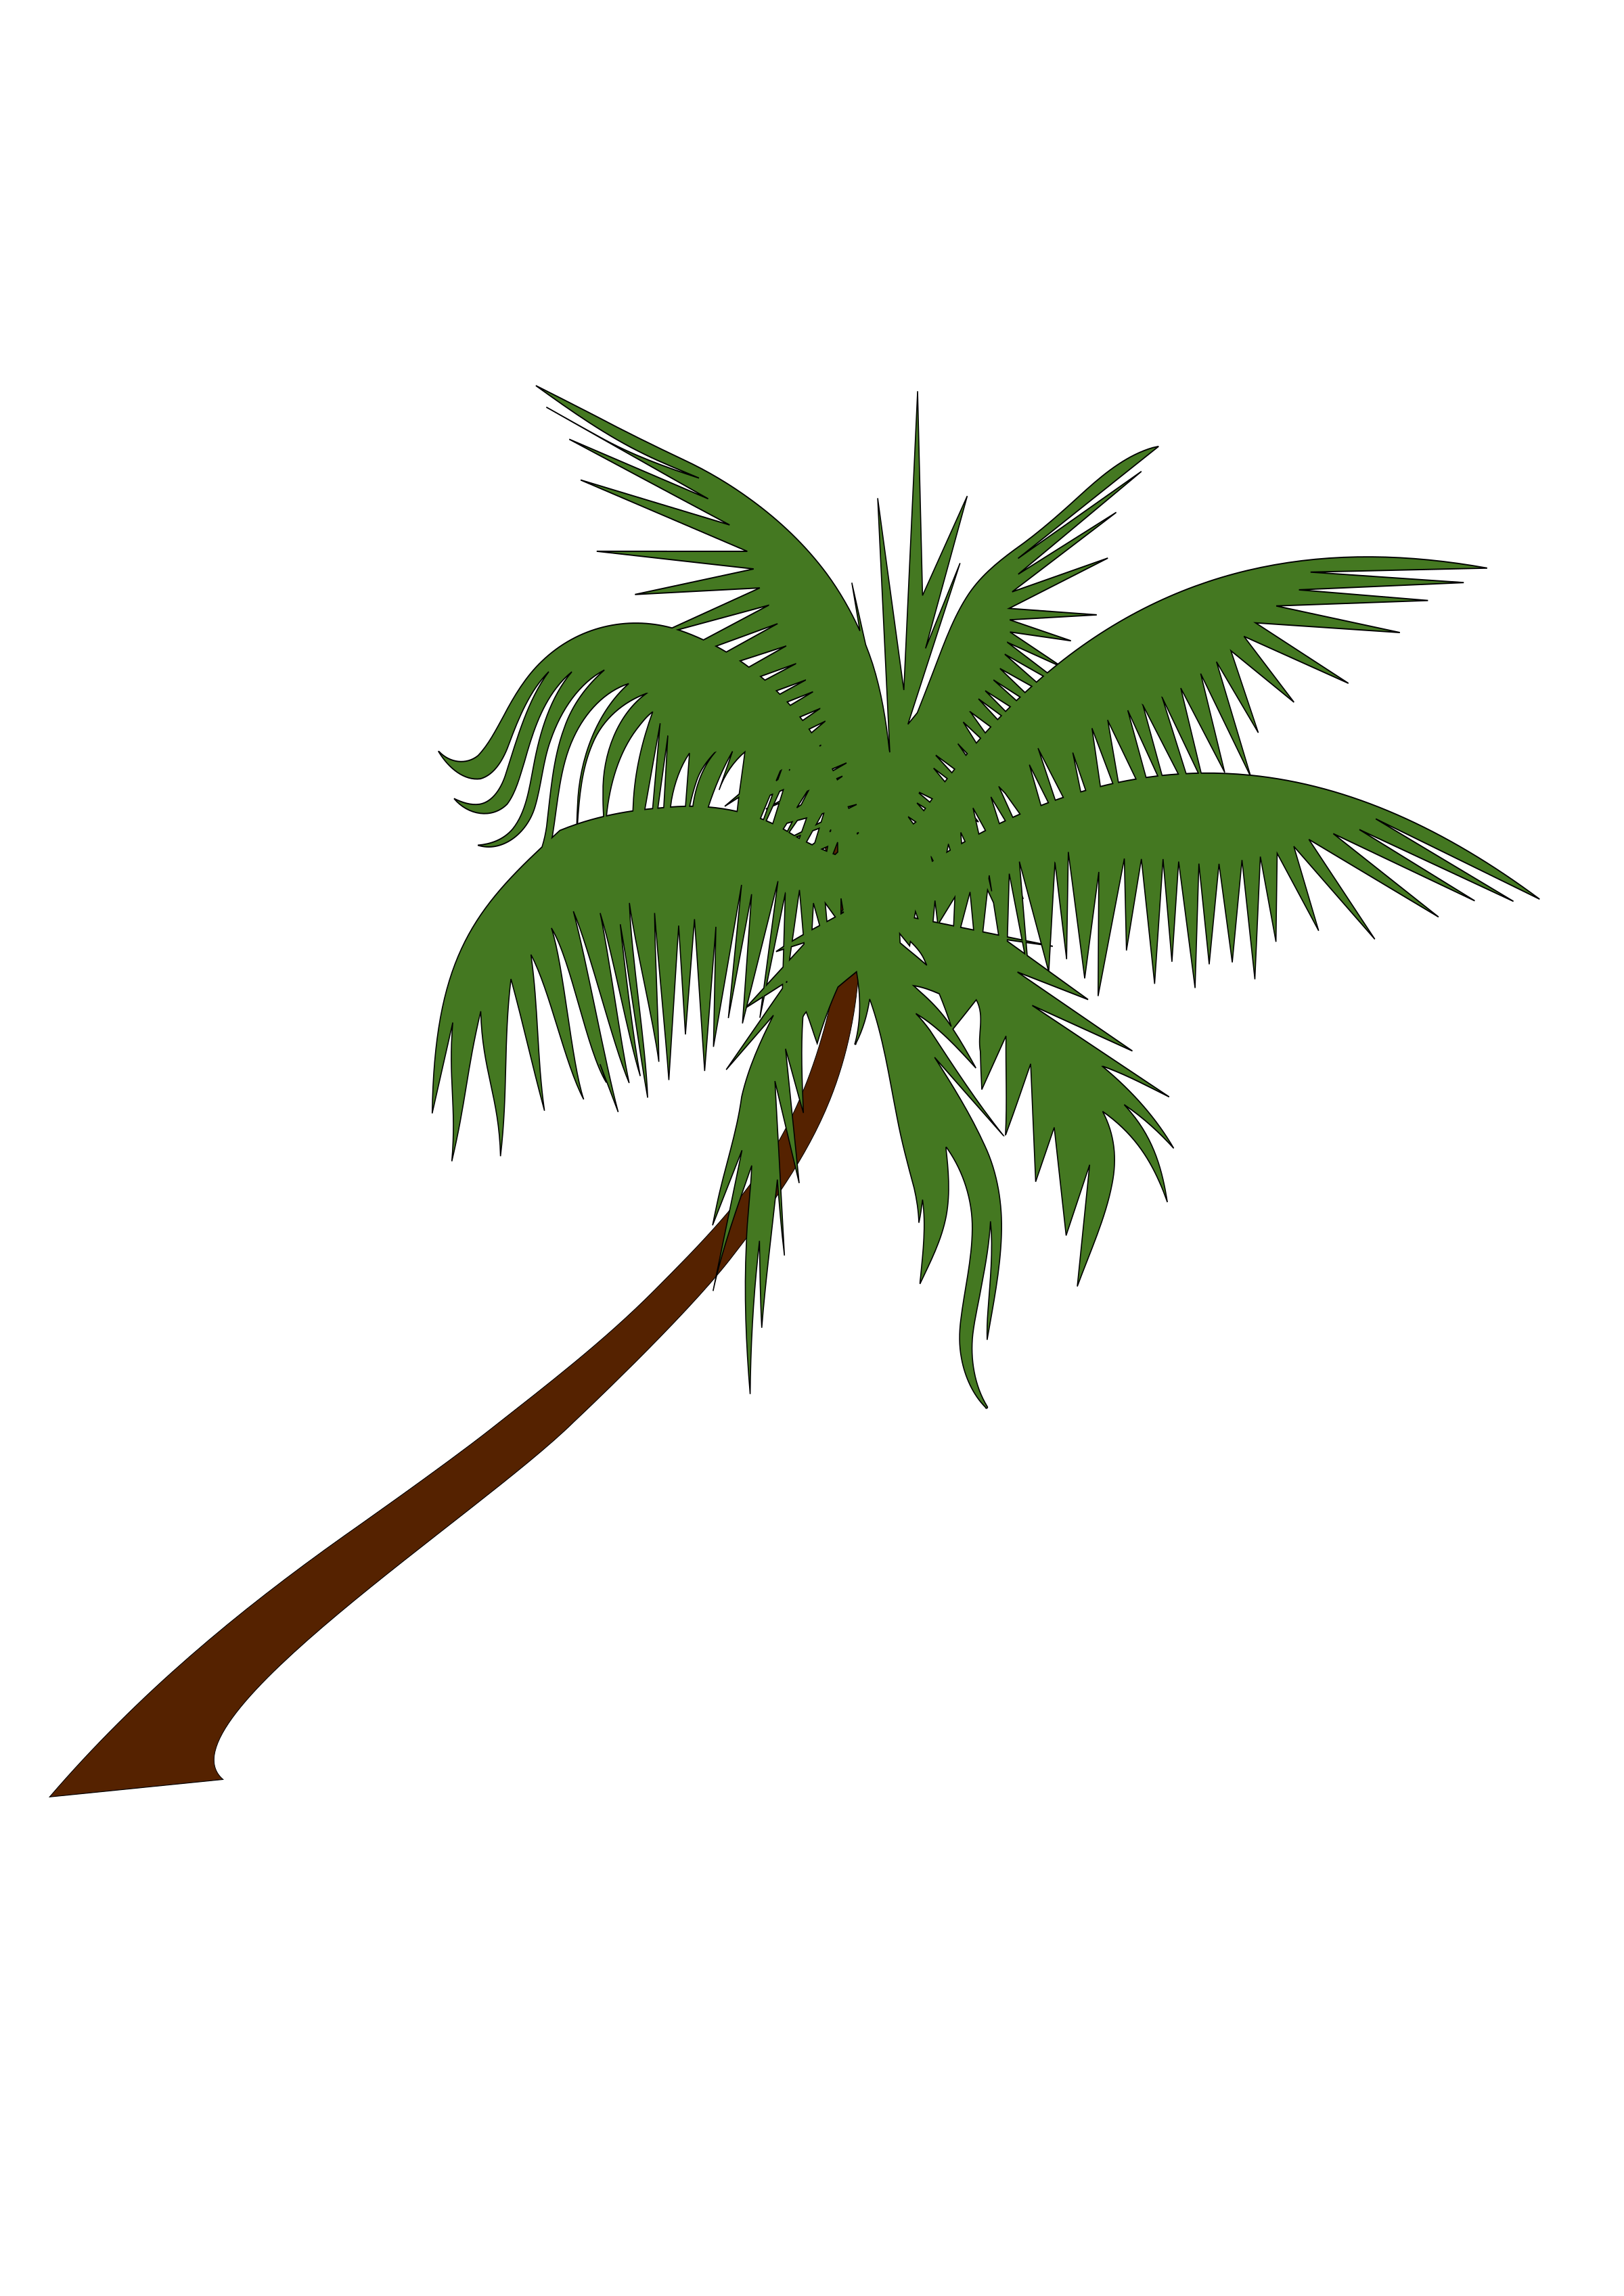 Palm trees clip art png. Coconut tree frees